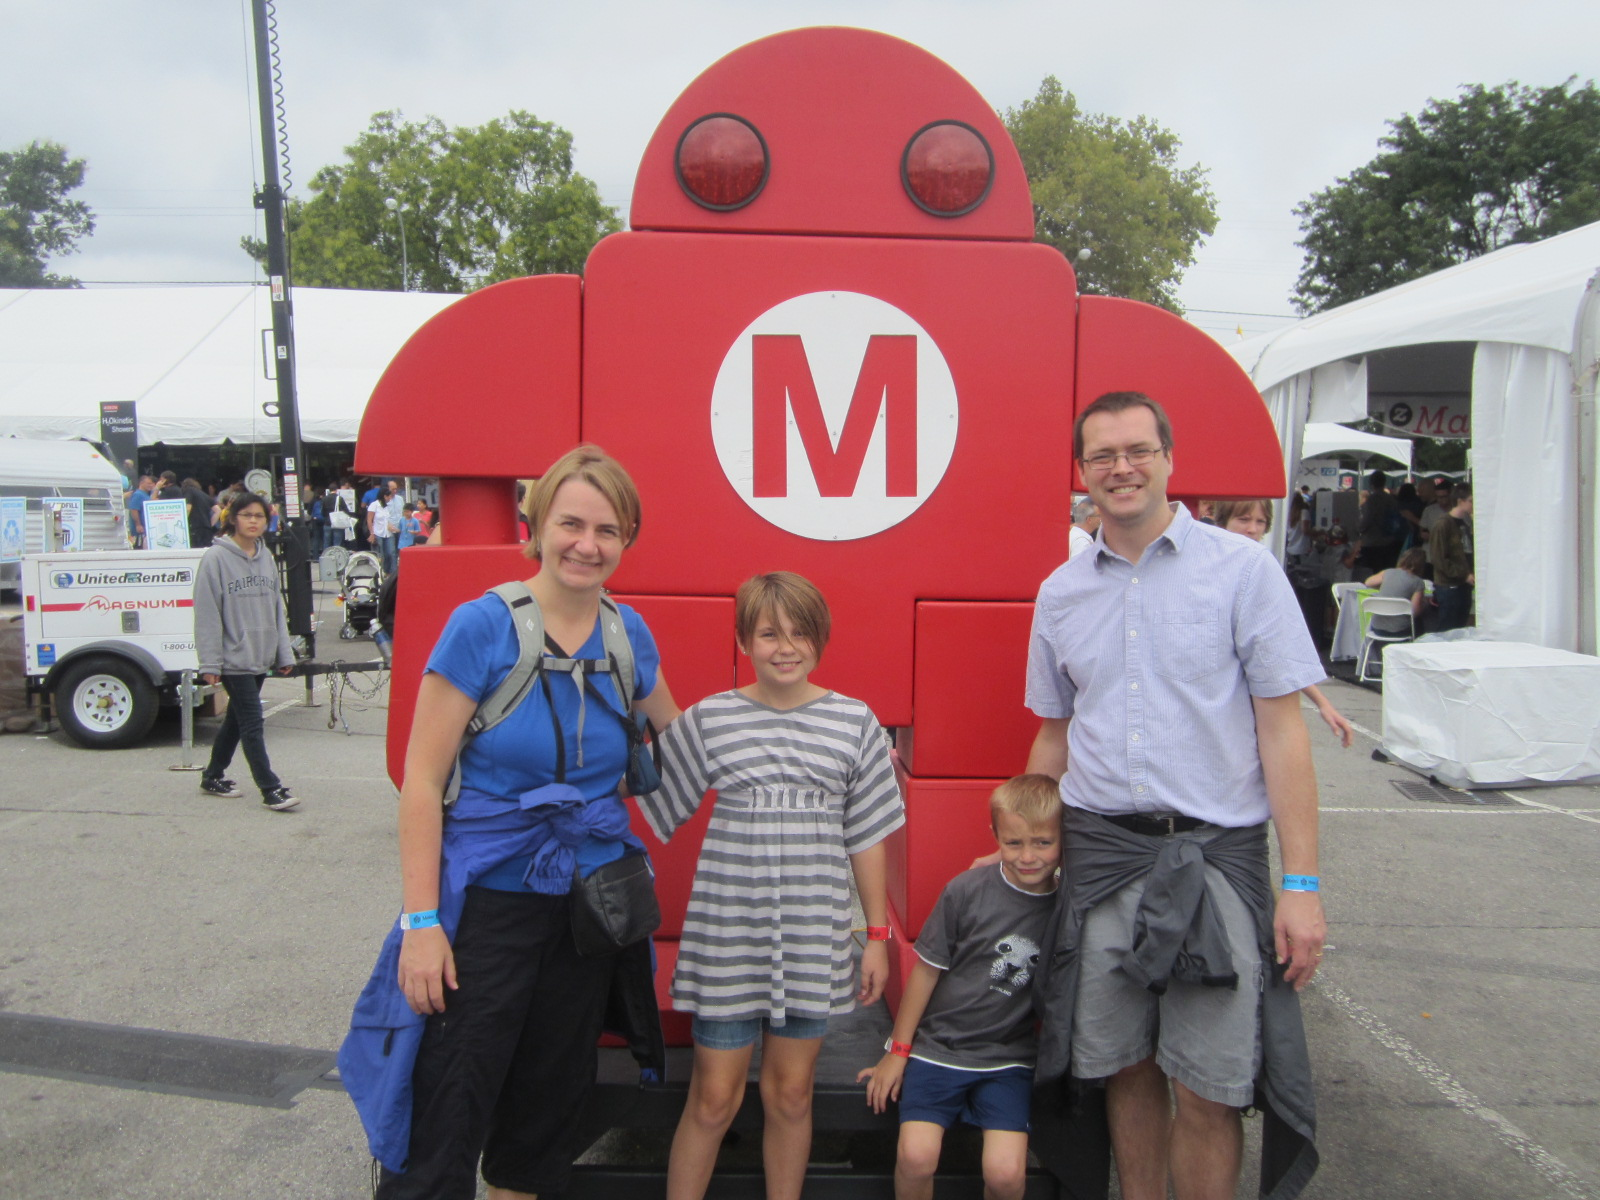 Happy family at World Maker Faire in New York City, September 21, 2013